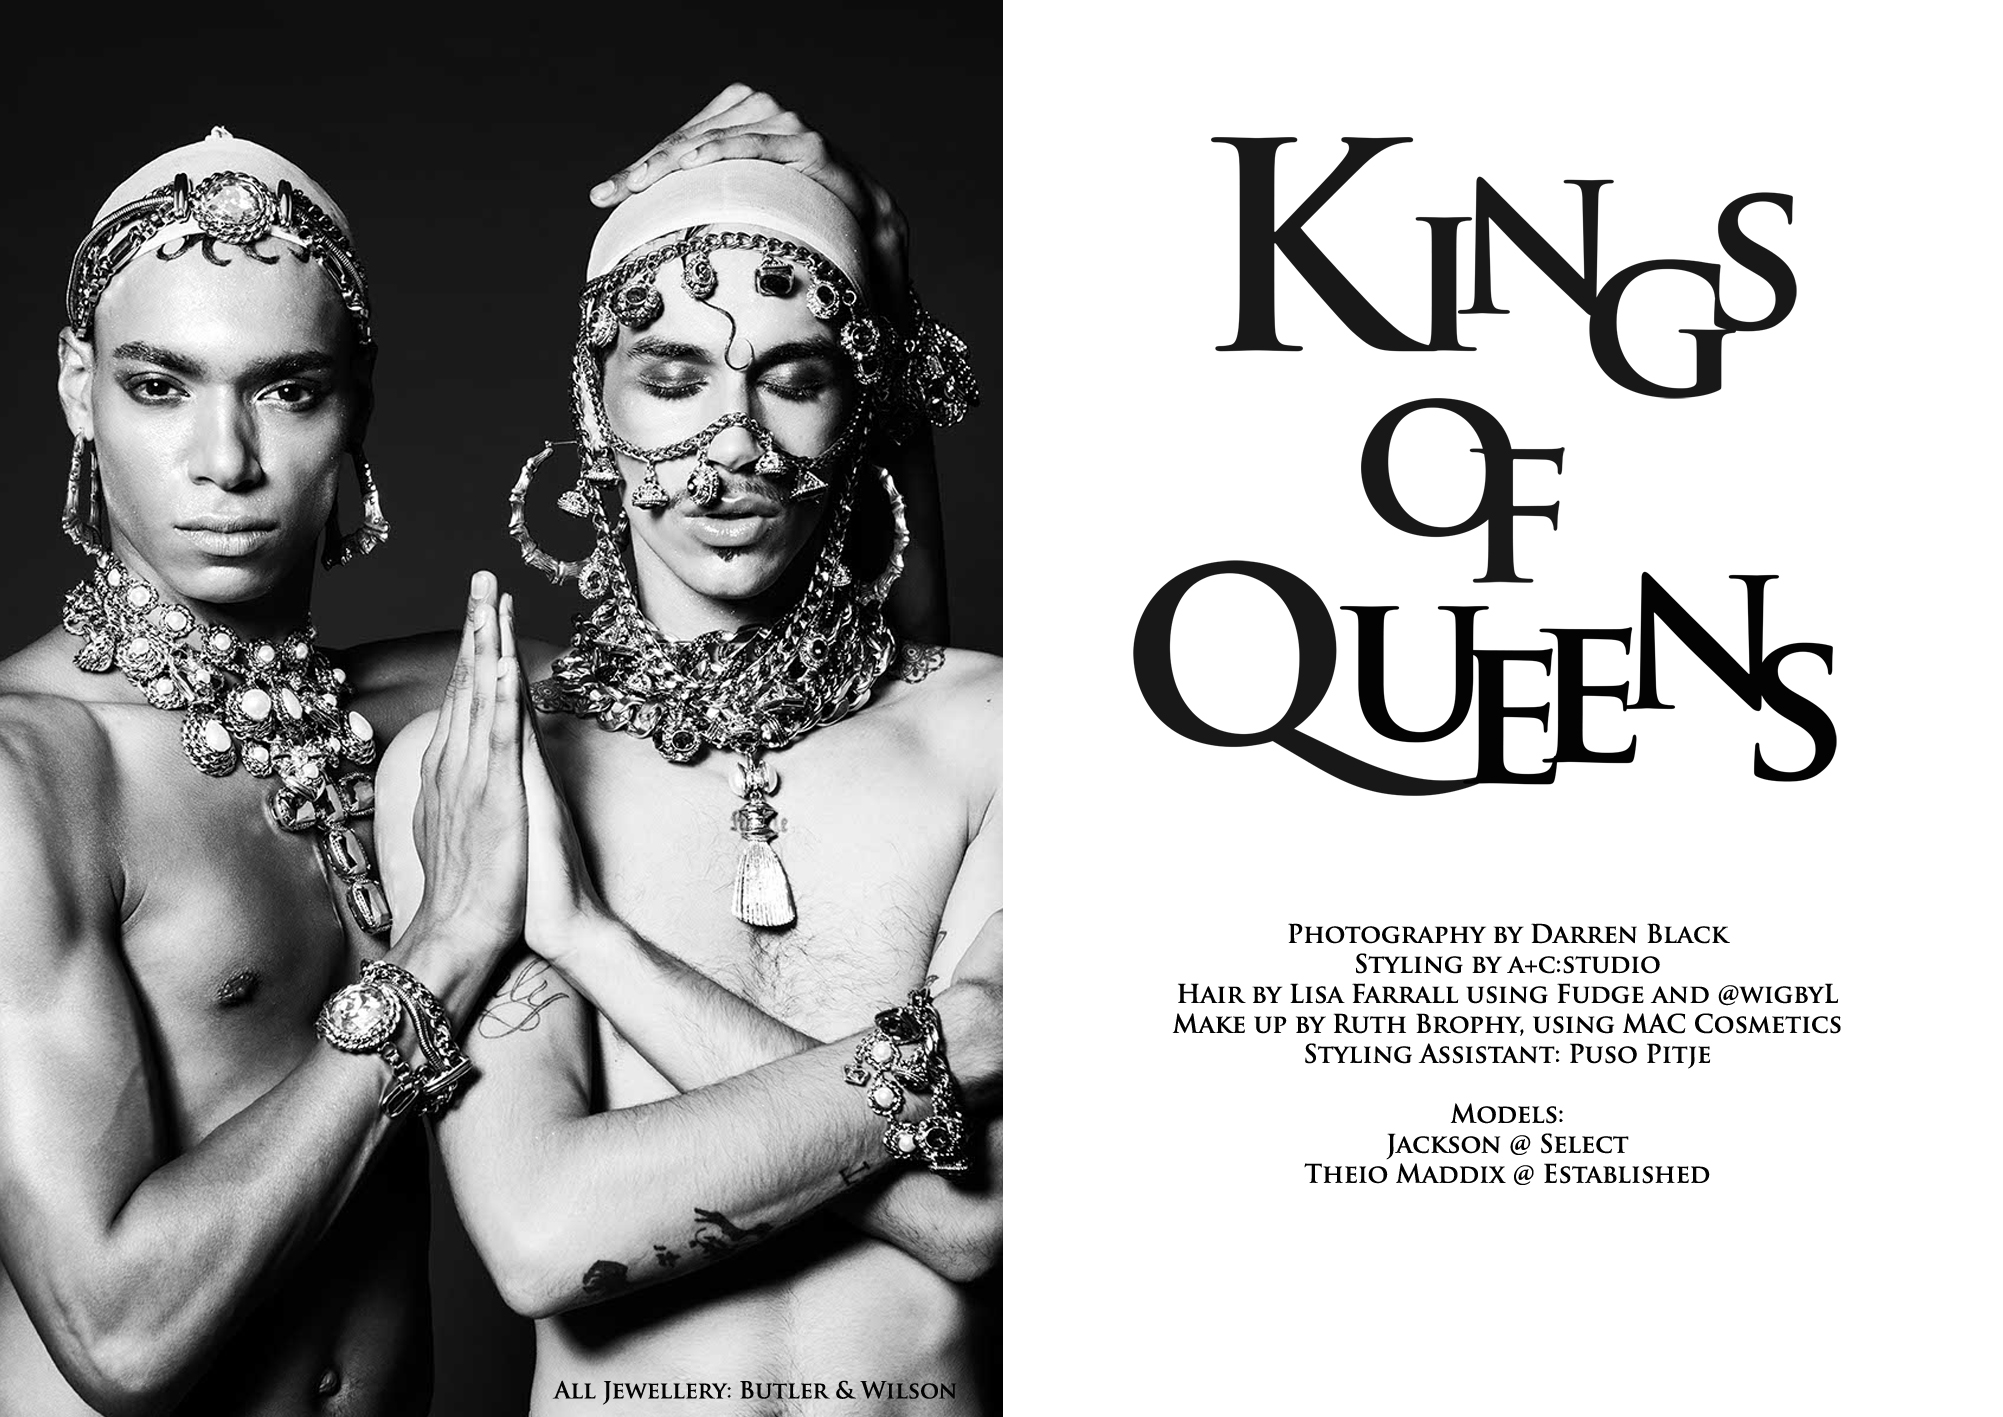 Kings of Queens p1.jpg